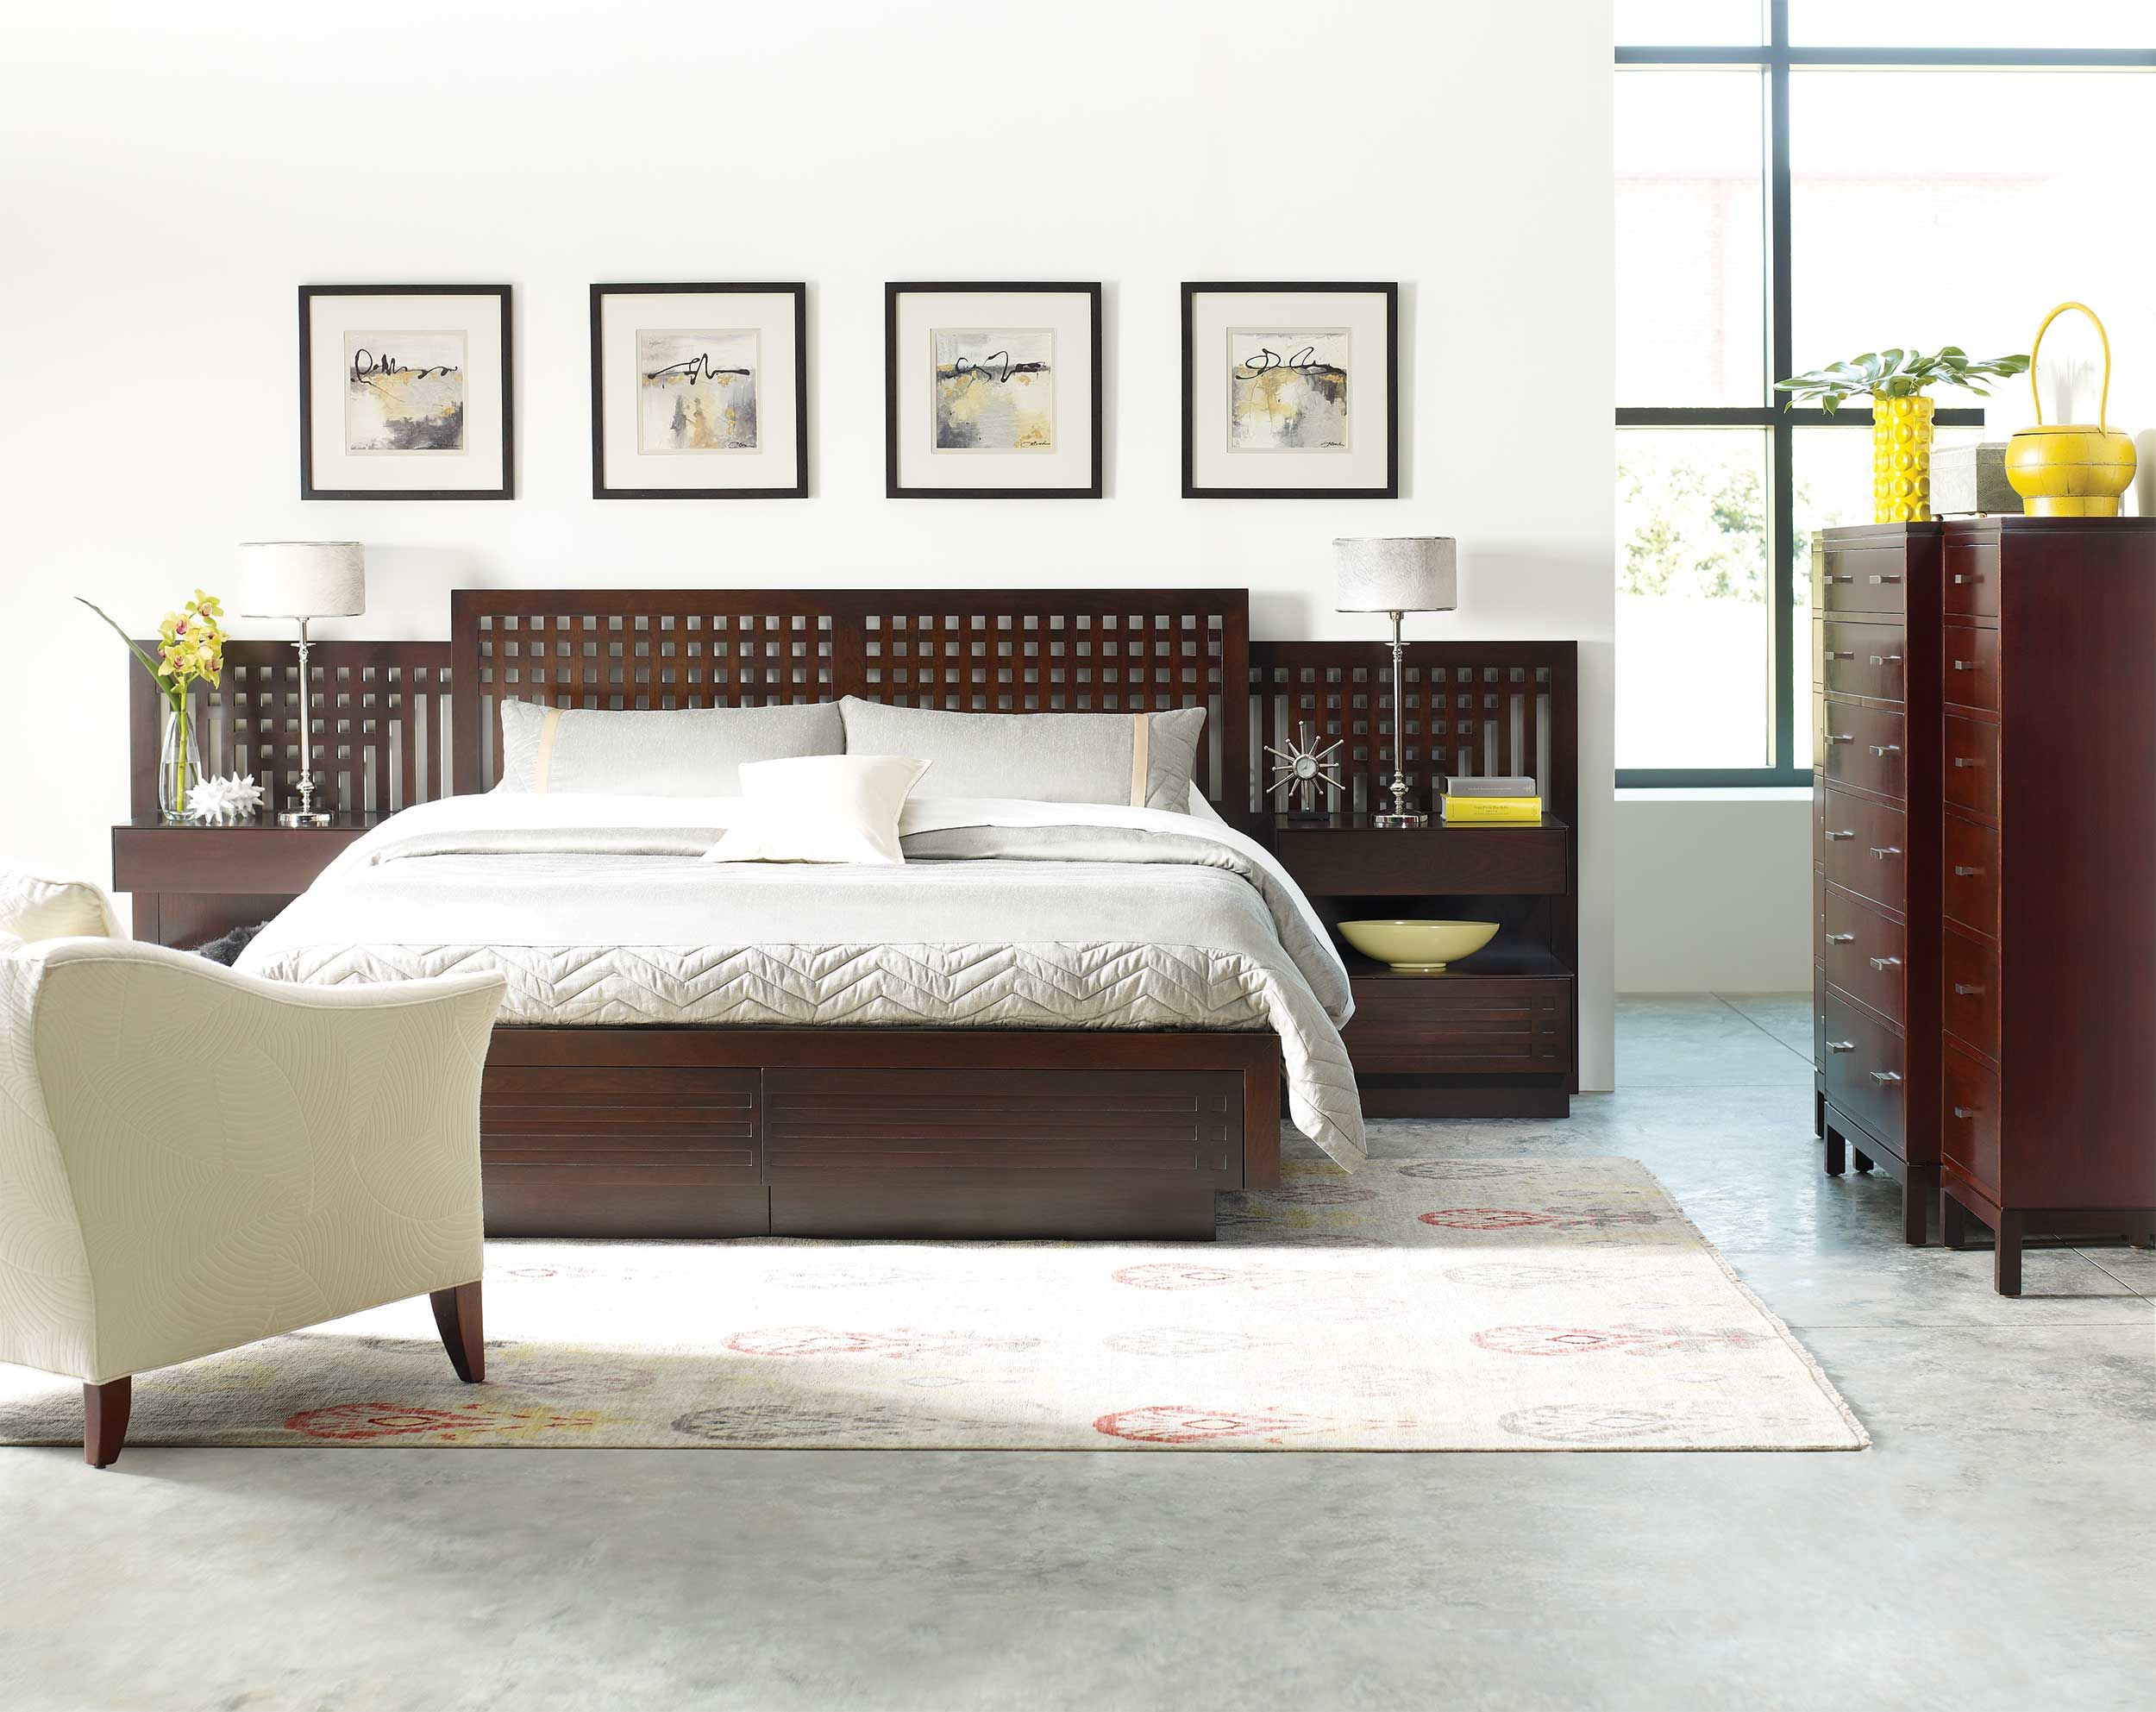 sofa manufacturers glasgow bianca futon bed reviews stickley furniture shown with night stands a